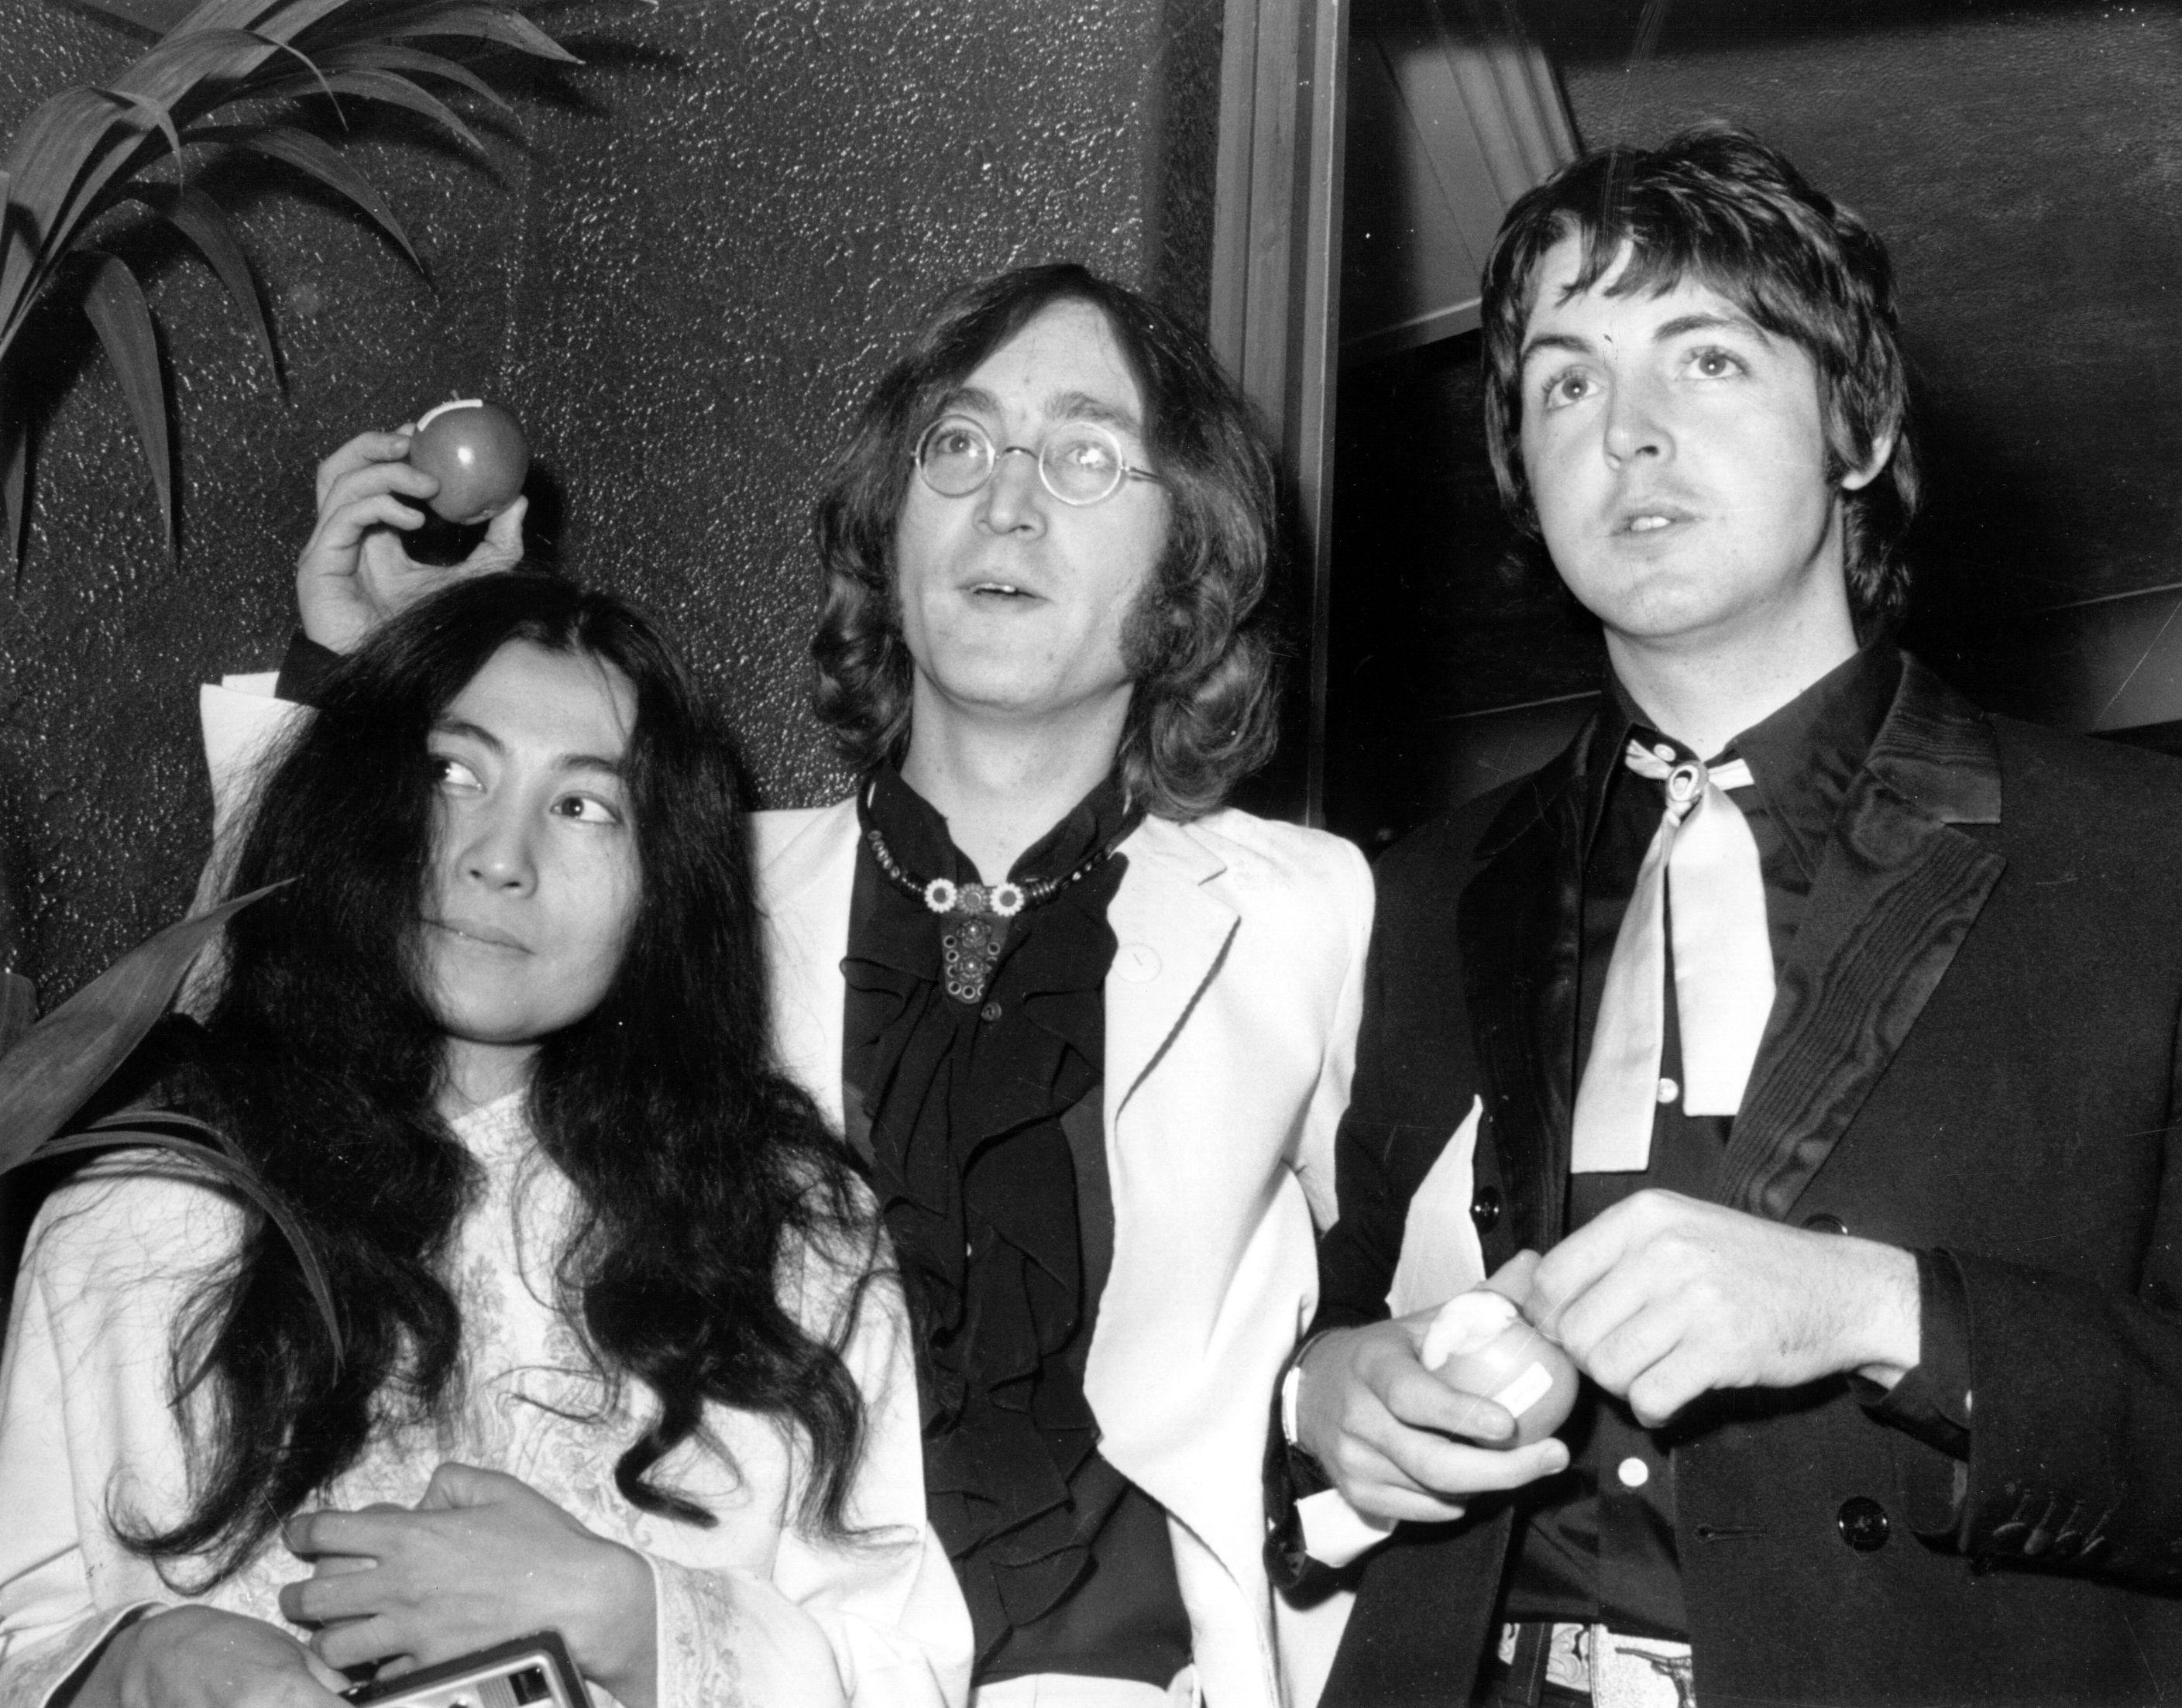 Yoko Ono, John Lennon and Paul McCartney The Beatl